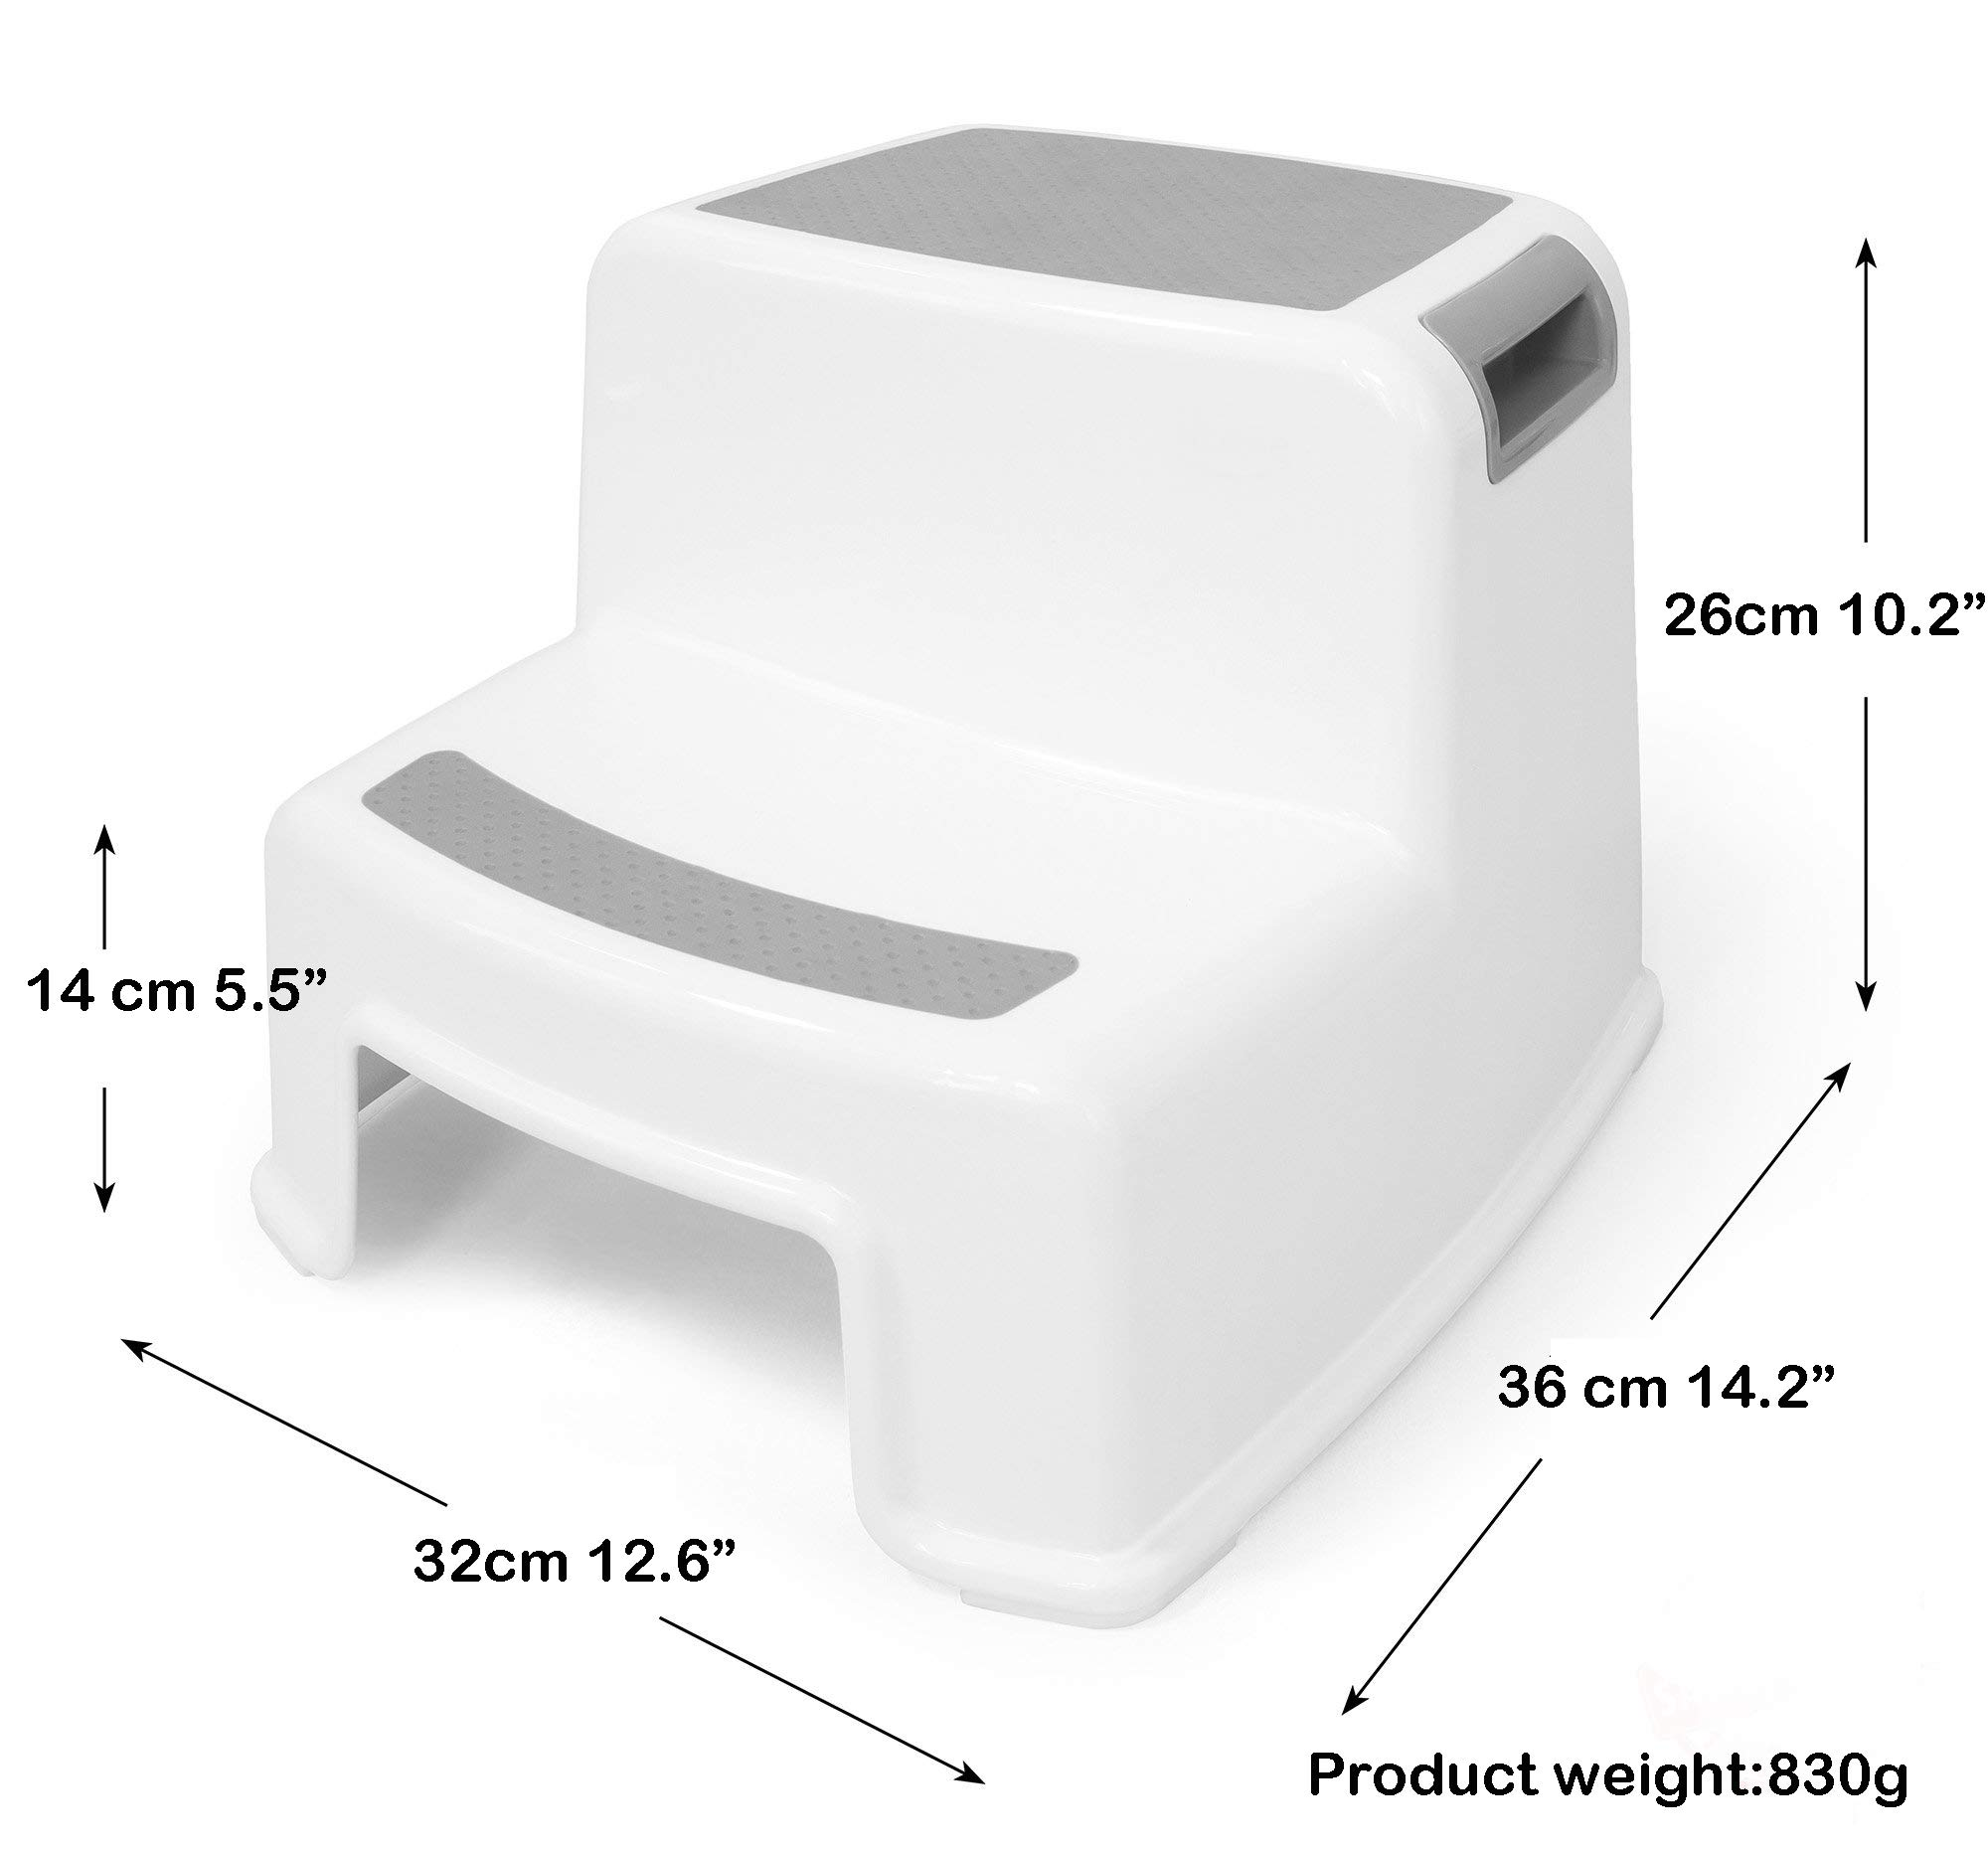 Step Stool for Kids by WonderVelt - (2 Pack) Toddlers White Dual Height Stool for Bathroom Toilet Training & Kitchen use- Handles, 2 Wide Steps with Soft Grip & Thick Rubber feet for Baby Skid Safety